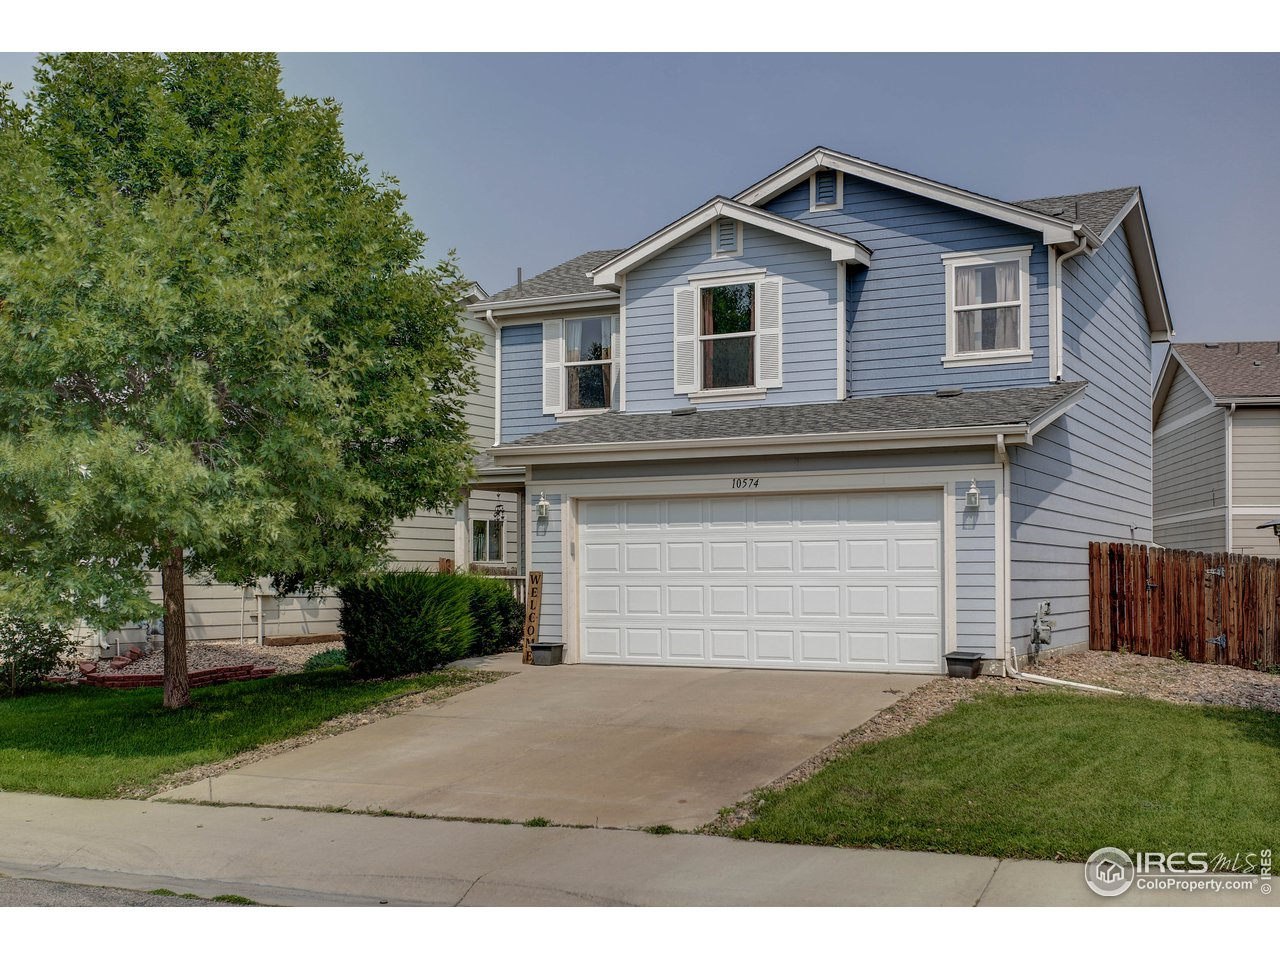 10574 Butte Dr, Longmont CO 80504